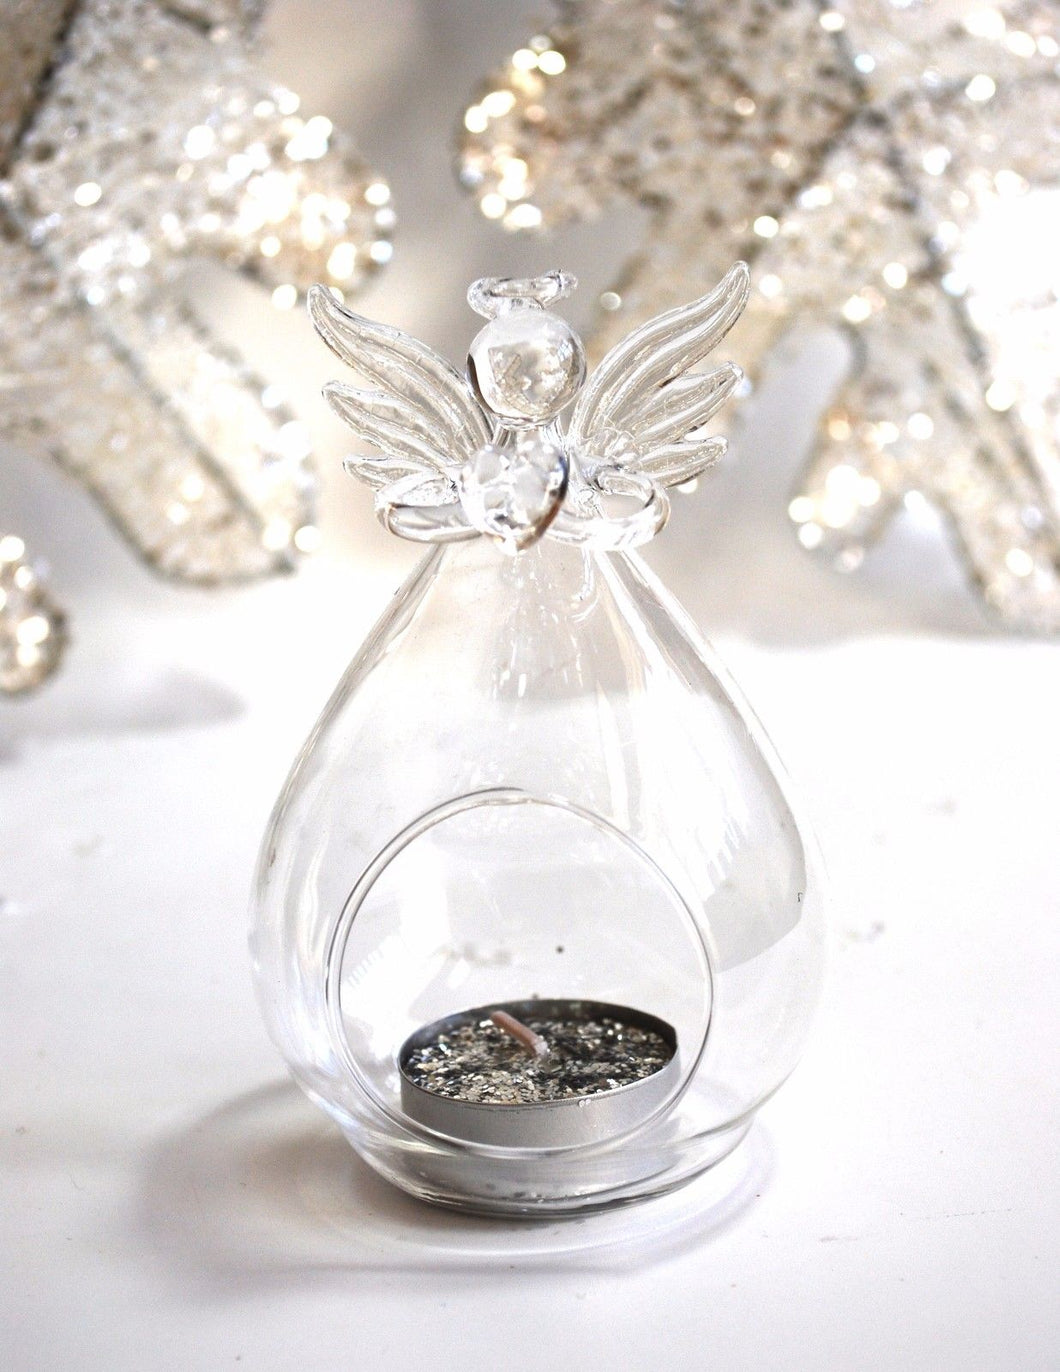 Angel Holding Heart Tealight Holder Glass Vase Decorative Gift